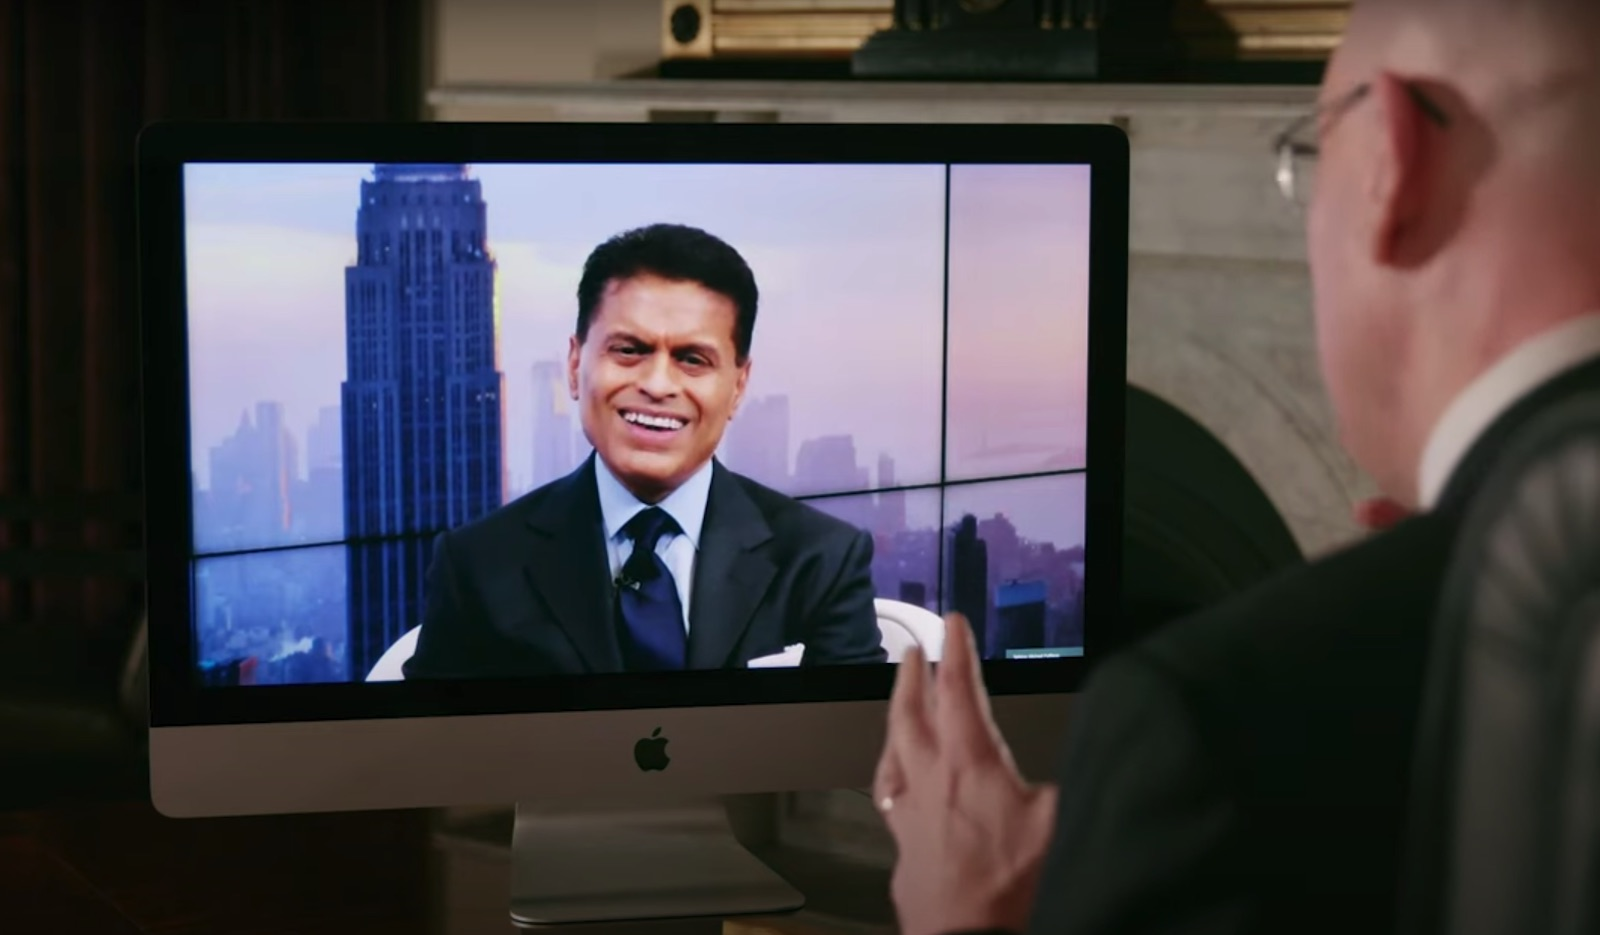 Fareed Zakaria speaking from New York with the Lowy Institute's Michael Fullilove for the 2020 Lowy Lecture